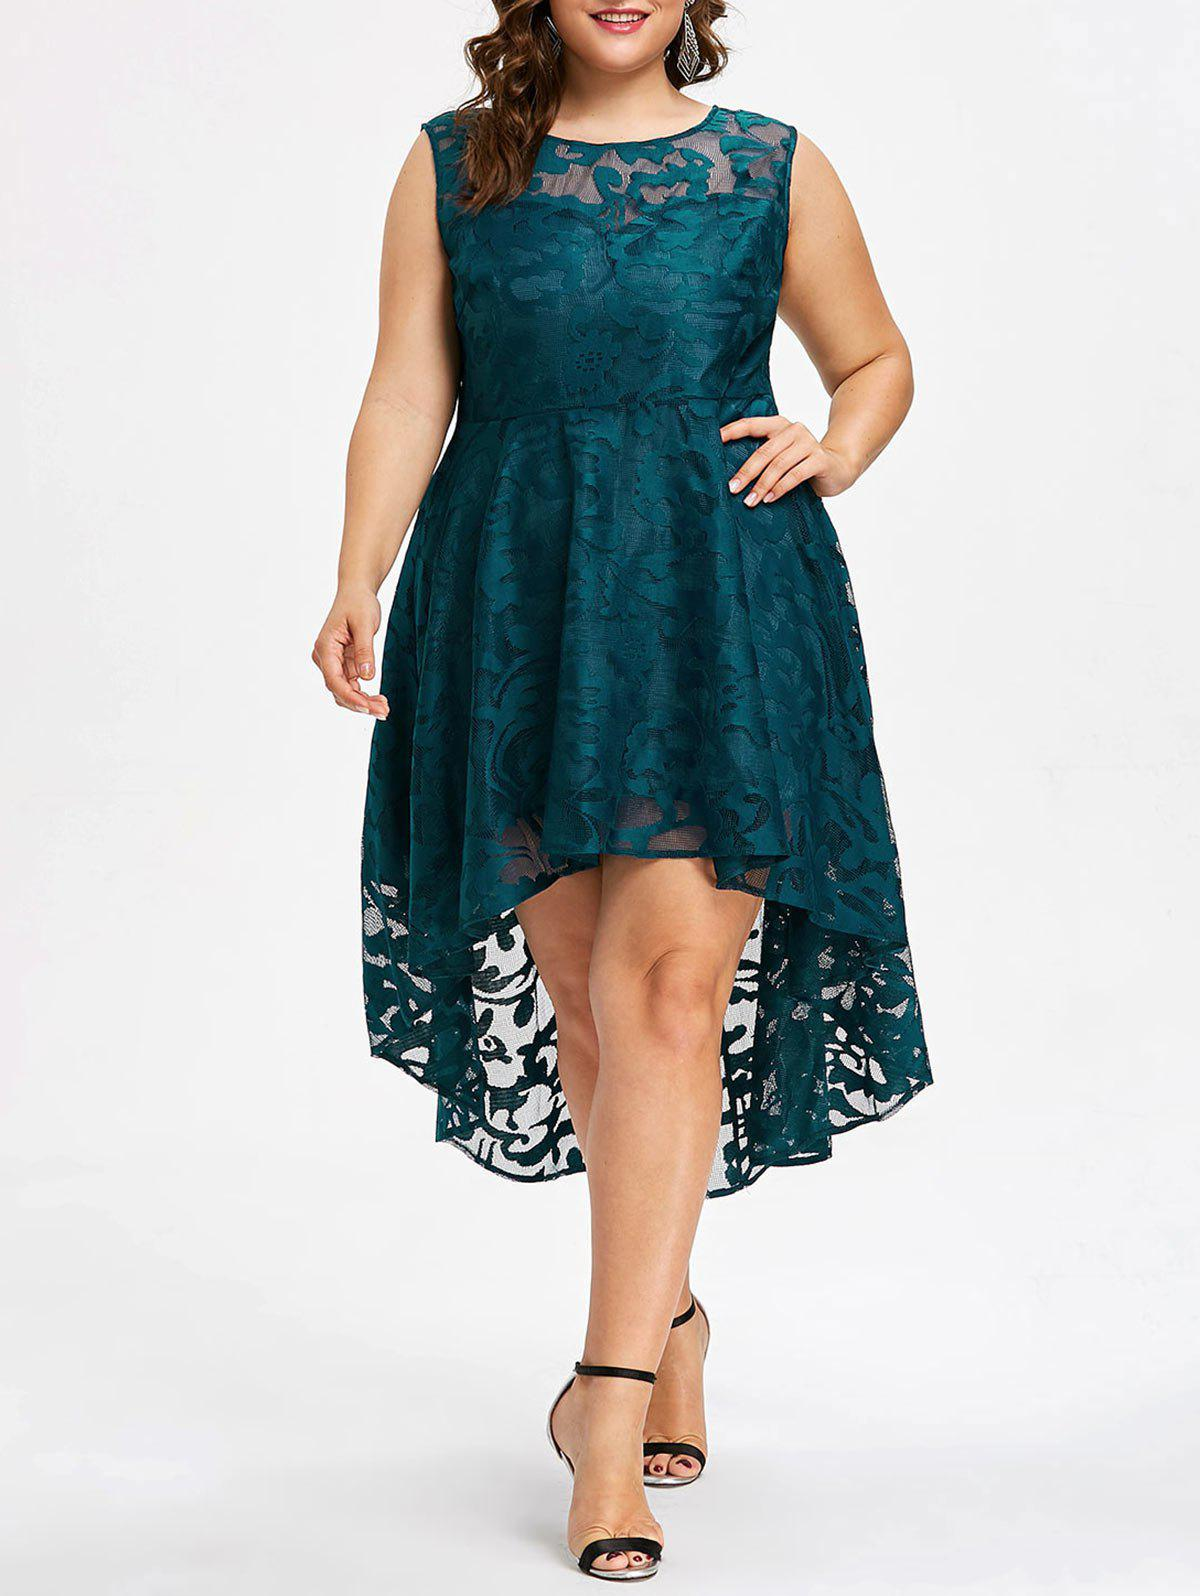 Plus Size Sleeveless Lace Party Dress - GLACIAL BLUE ICE 1X